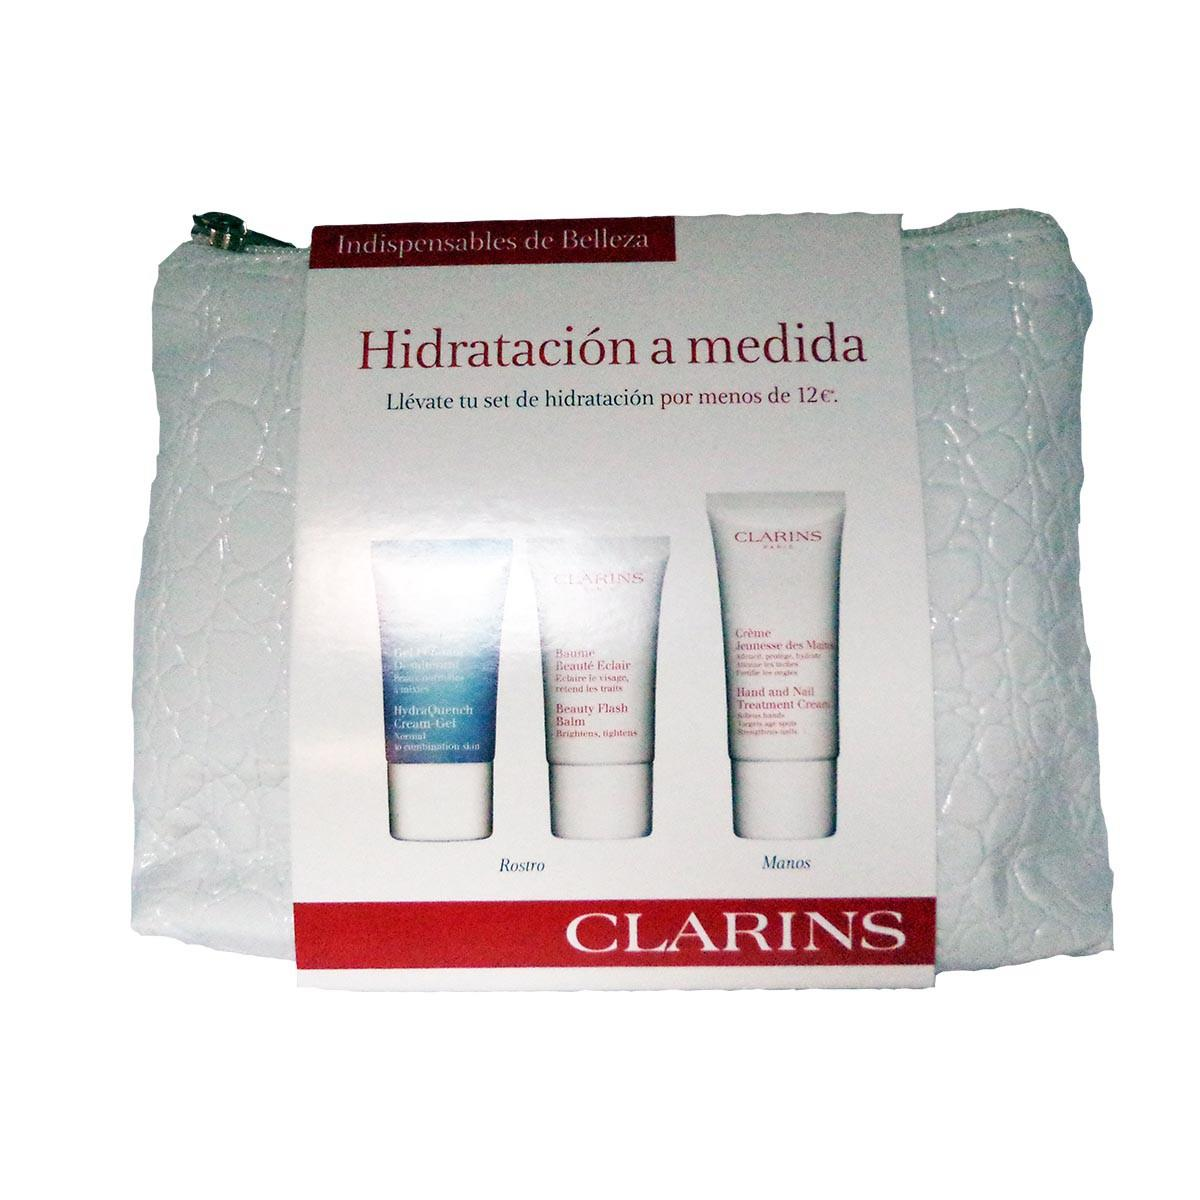 Clarins fragrances Custon Hydration Gel Fondant Desalterant 15ml Baume Beaute Eclair 15ml Creme Jeunesse Des Mains 30ml